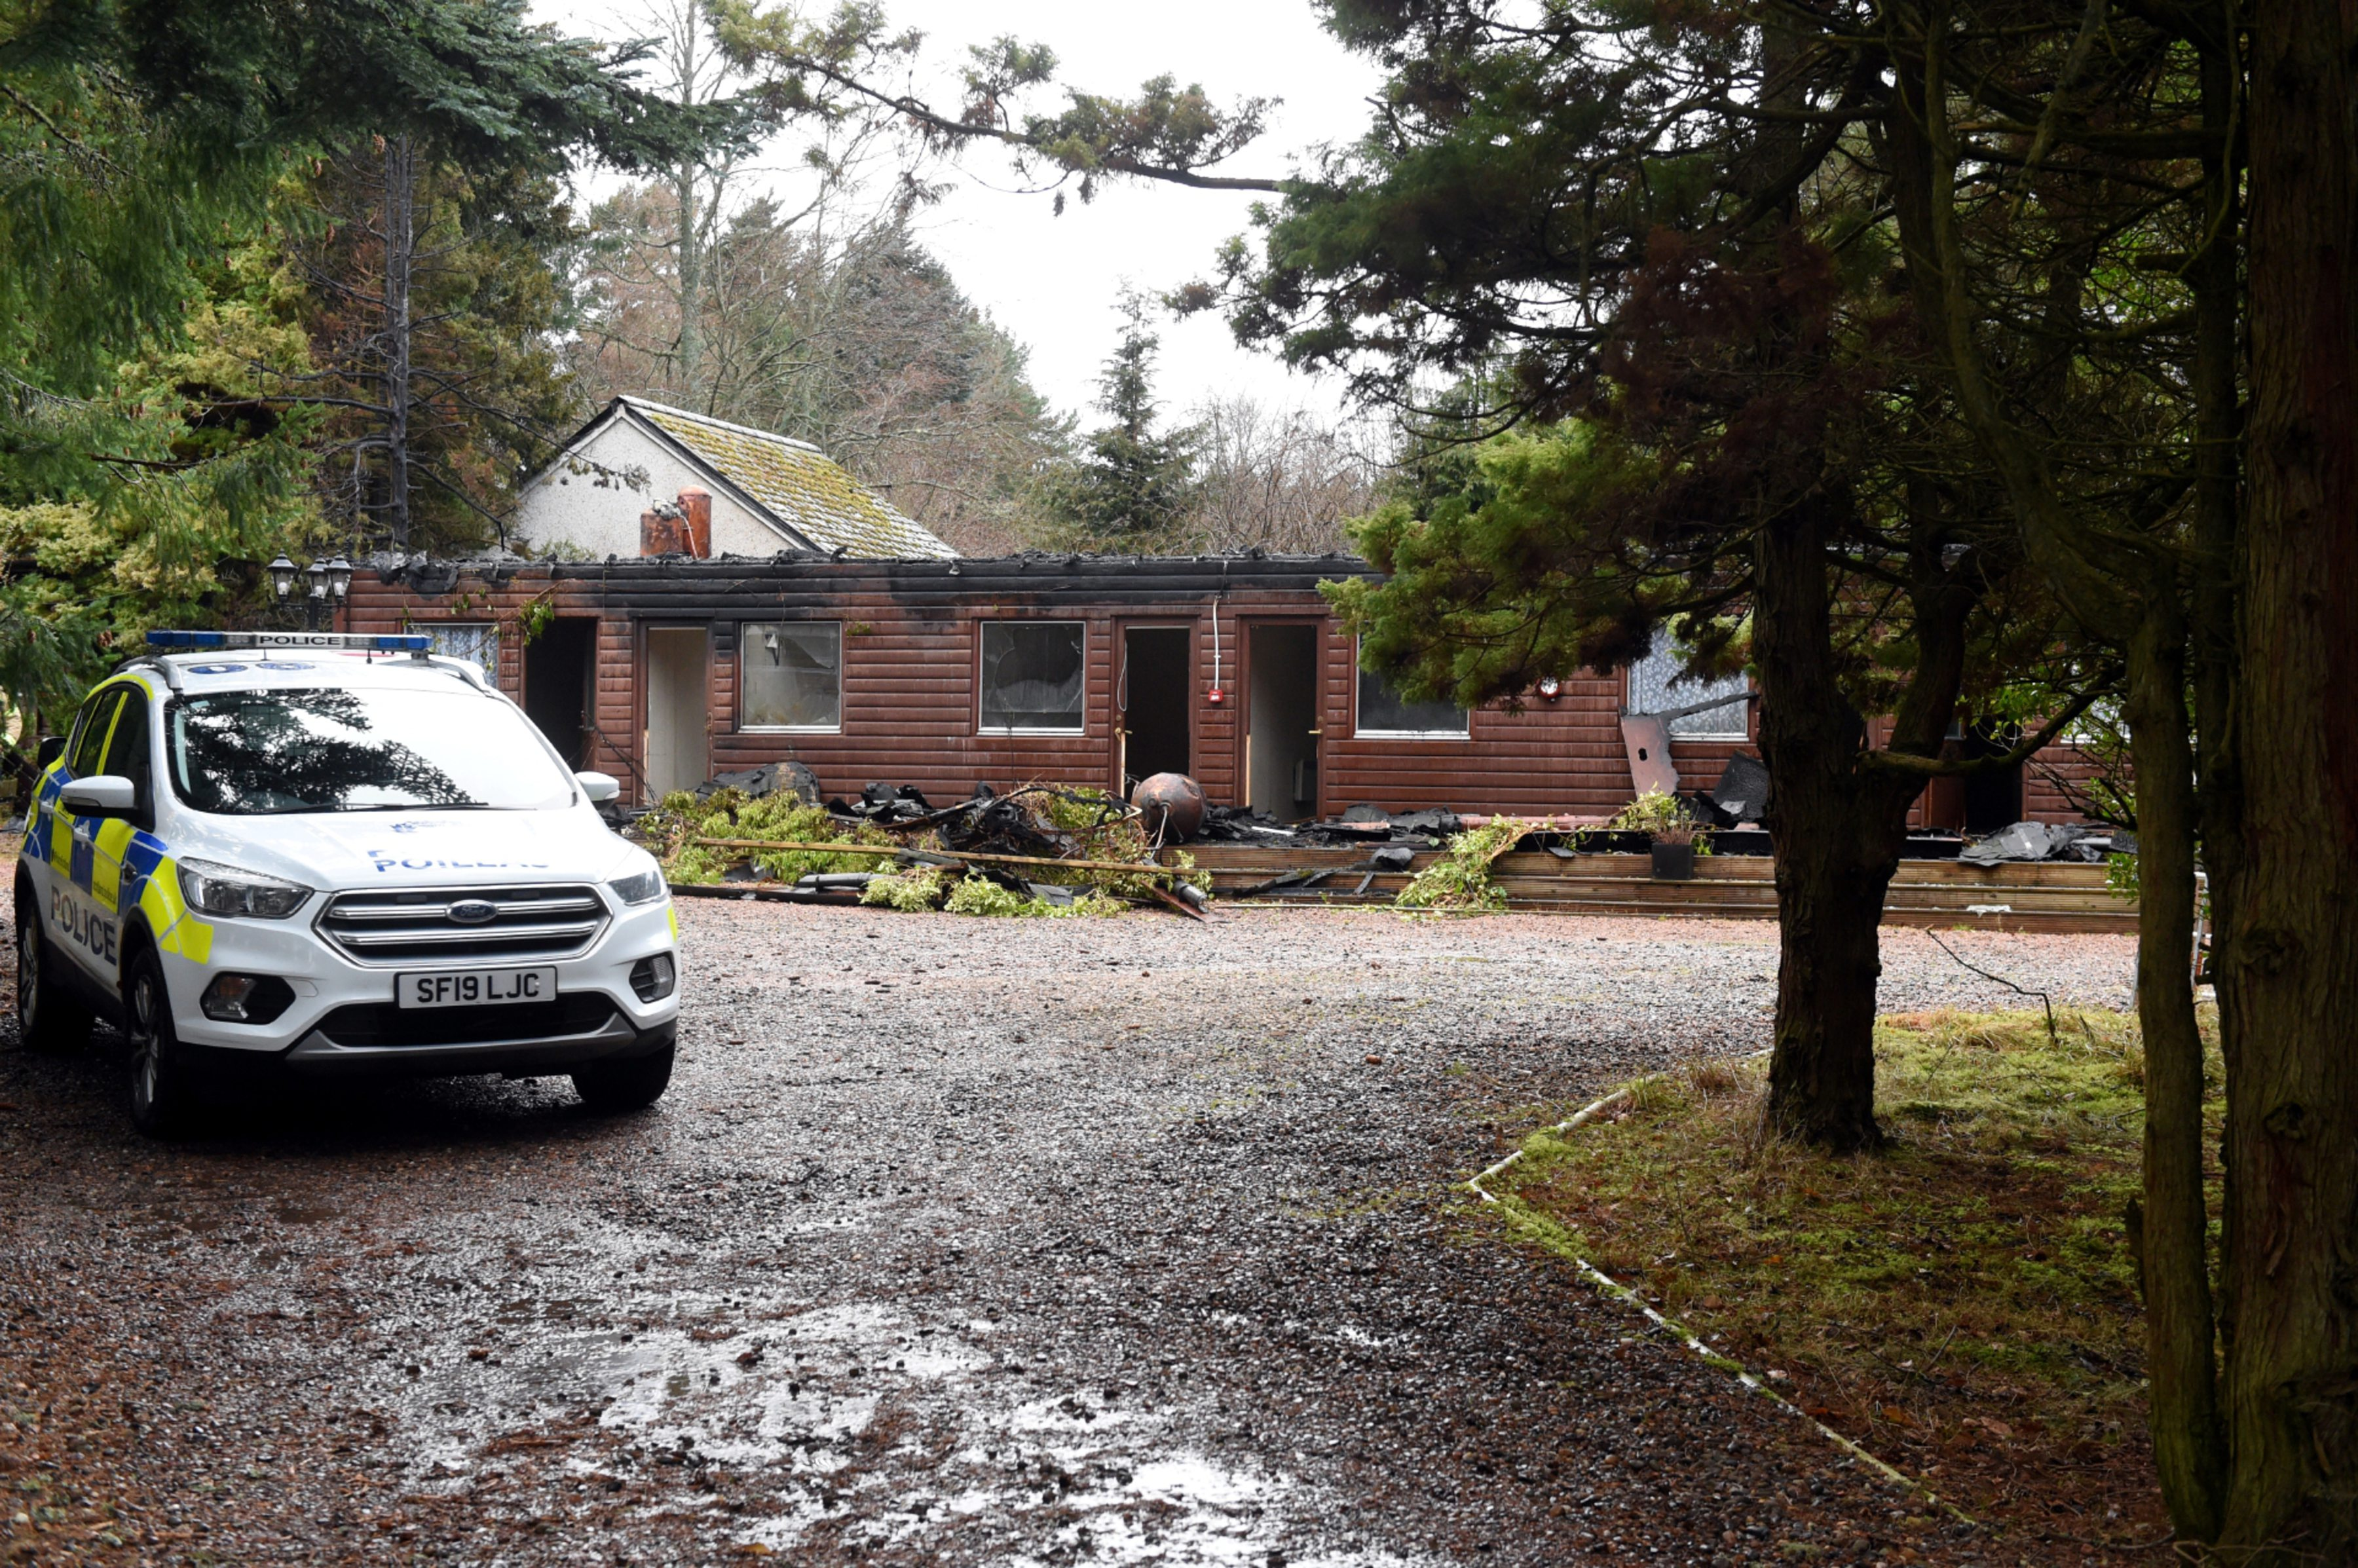 The scene of the fire at Glen Lui hotel, Invercauld Road, Ballater. Picture by Jim Irvine